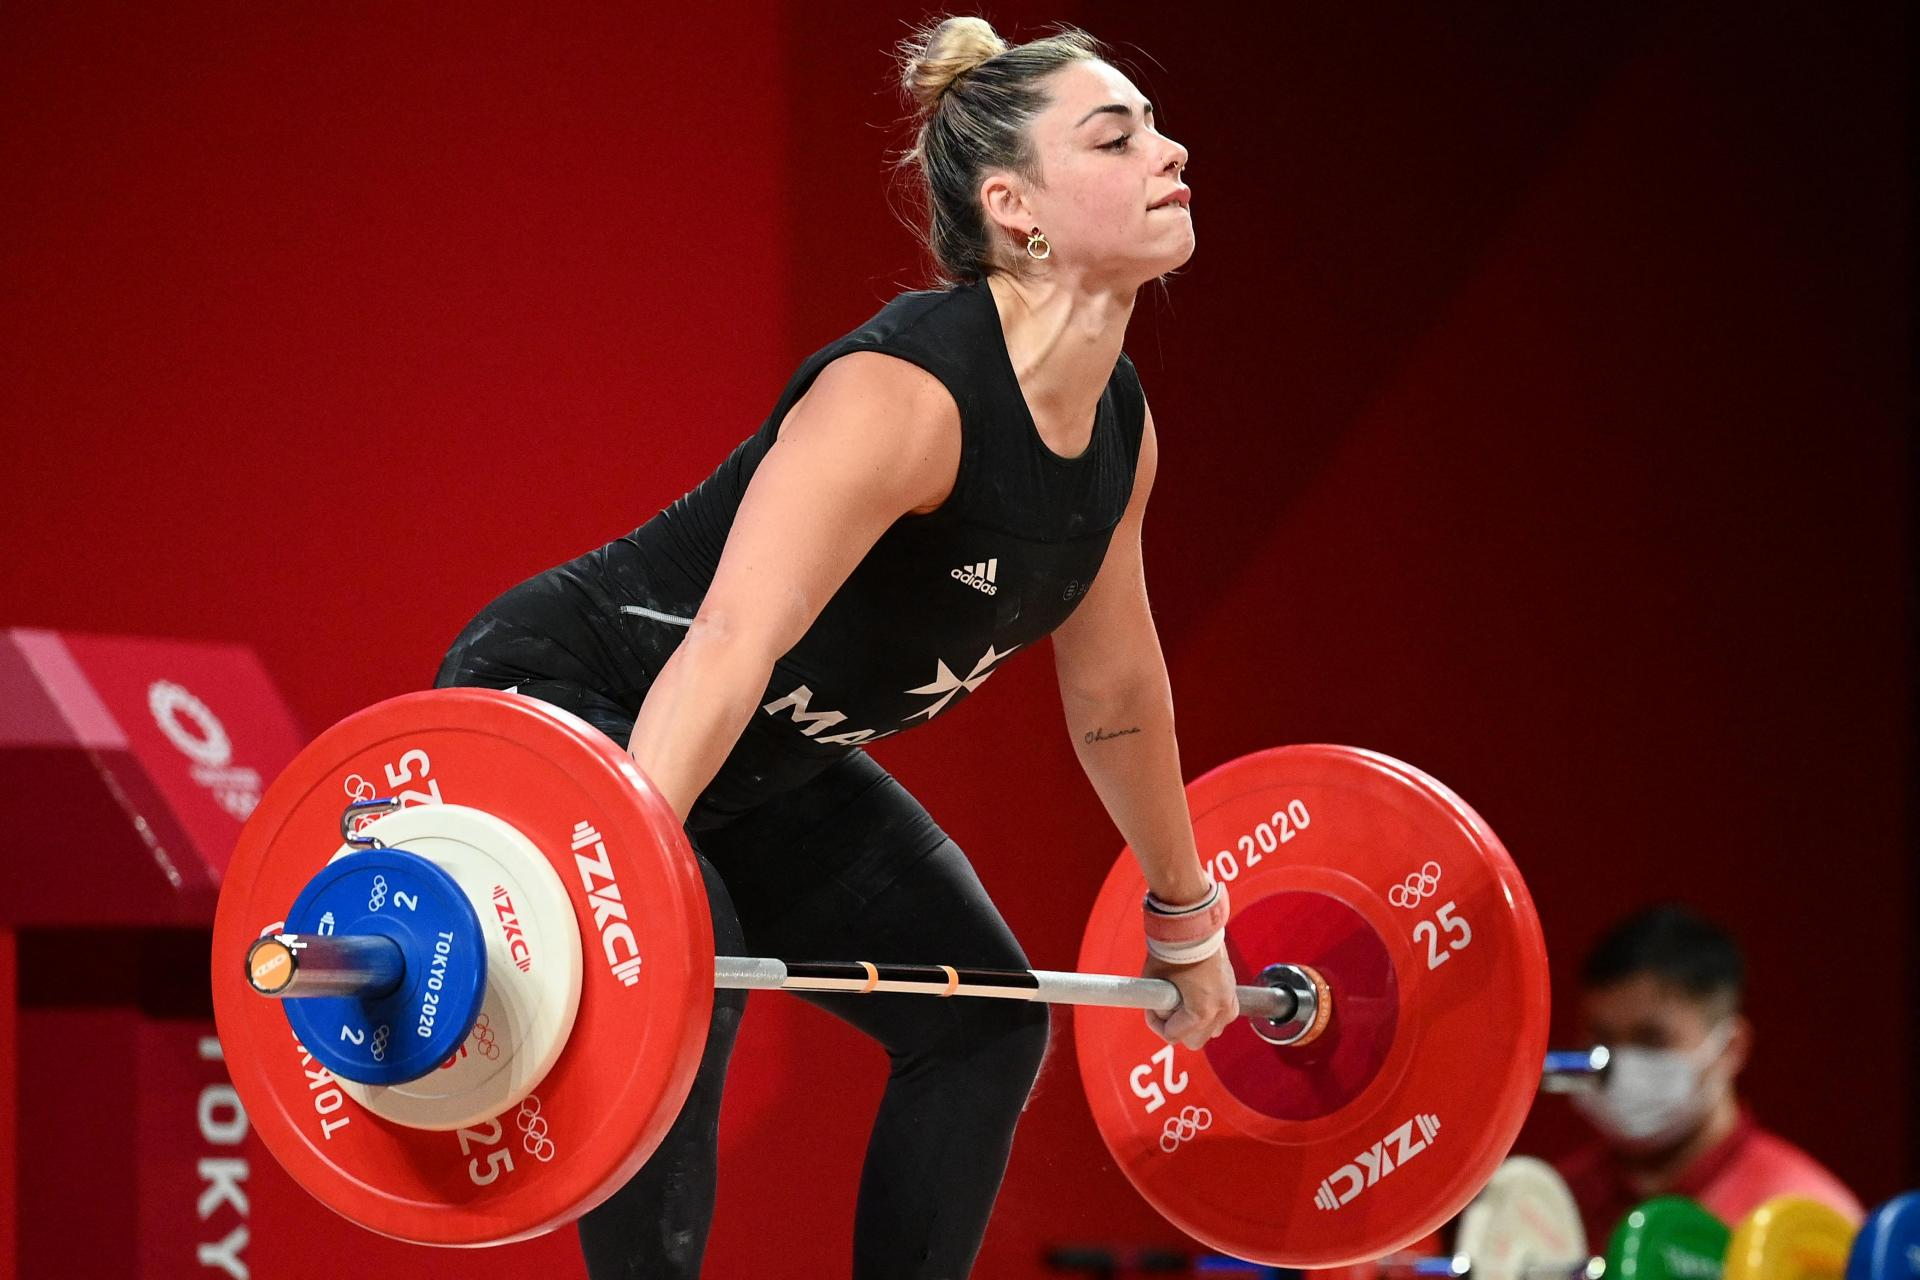 Malta's First-Ever Female Olympic Weightlifter, Finishes Third In Group B